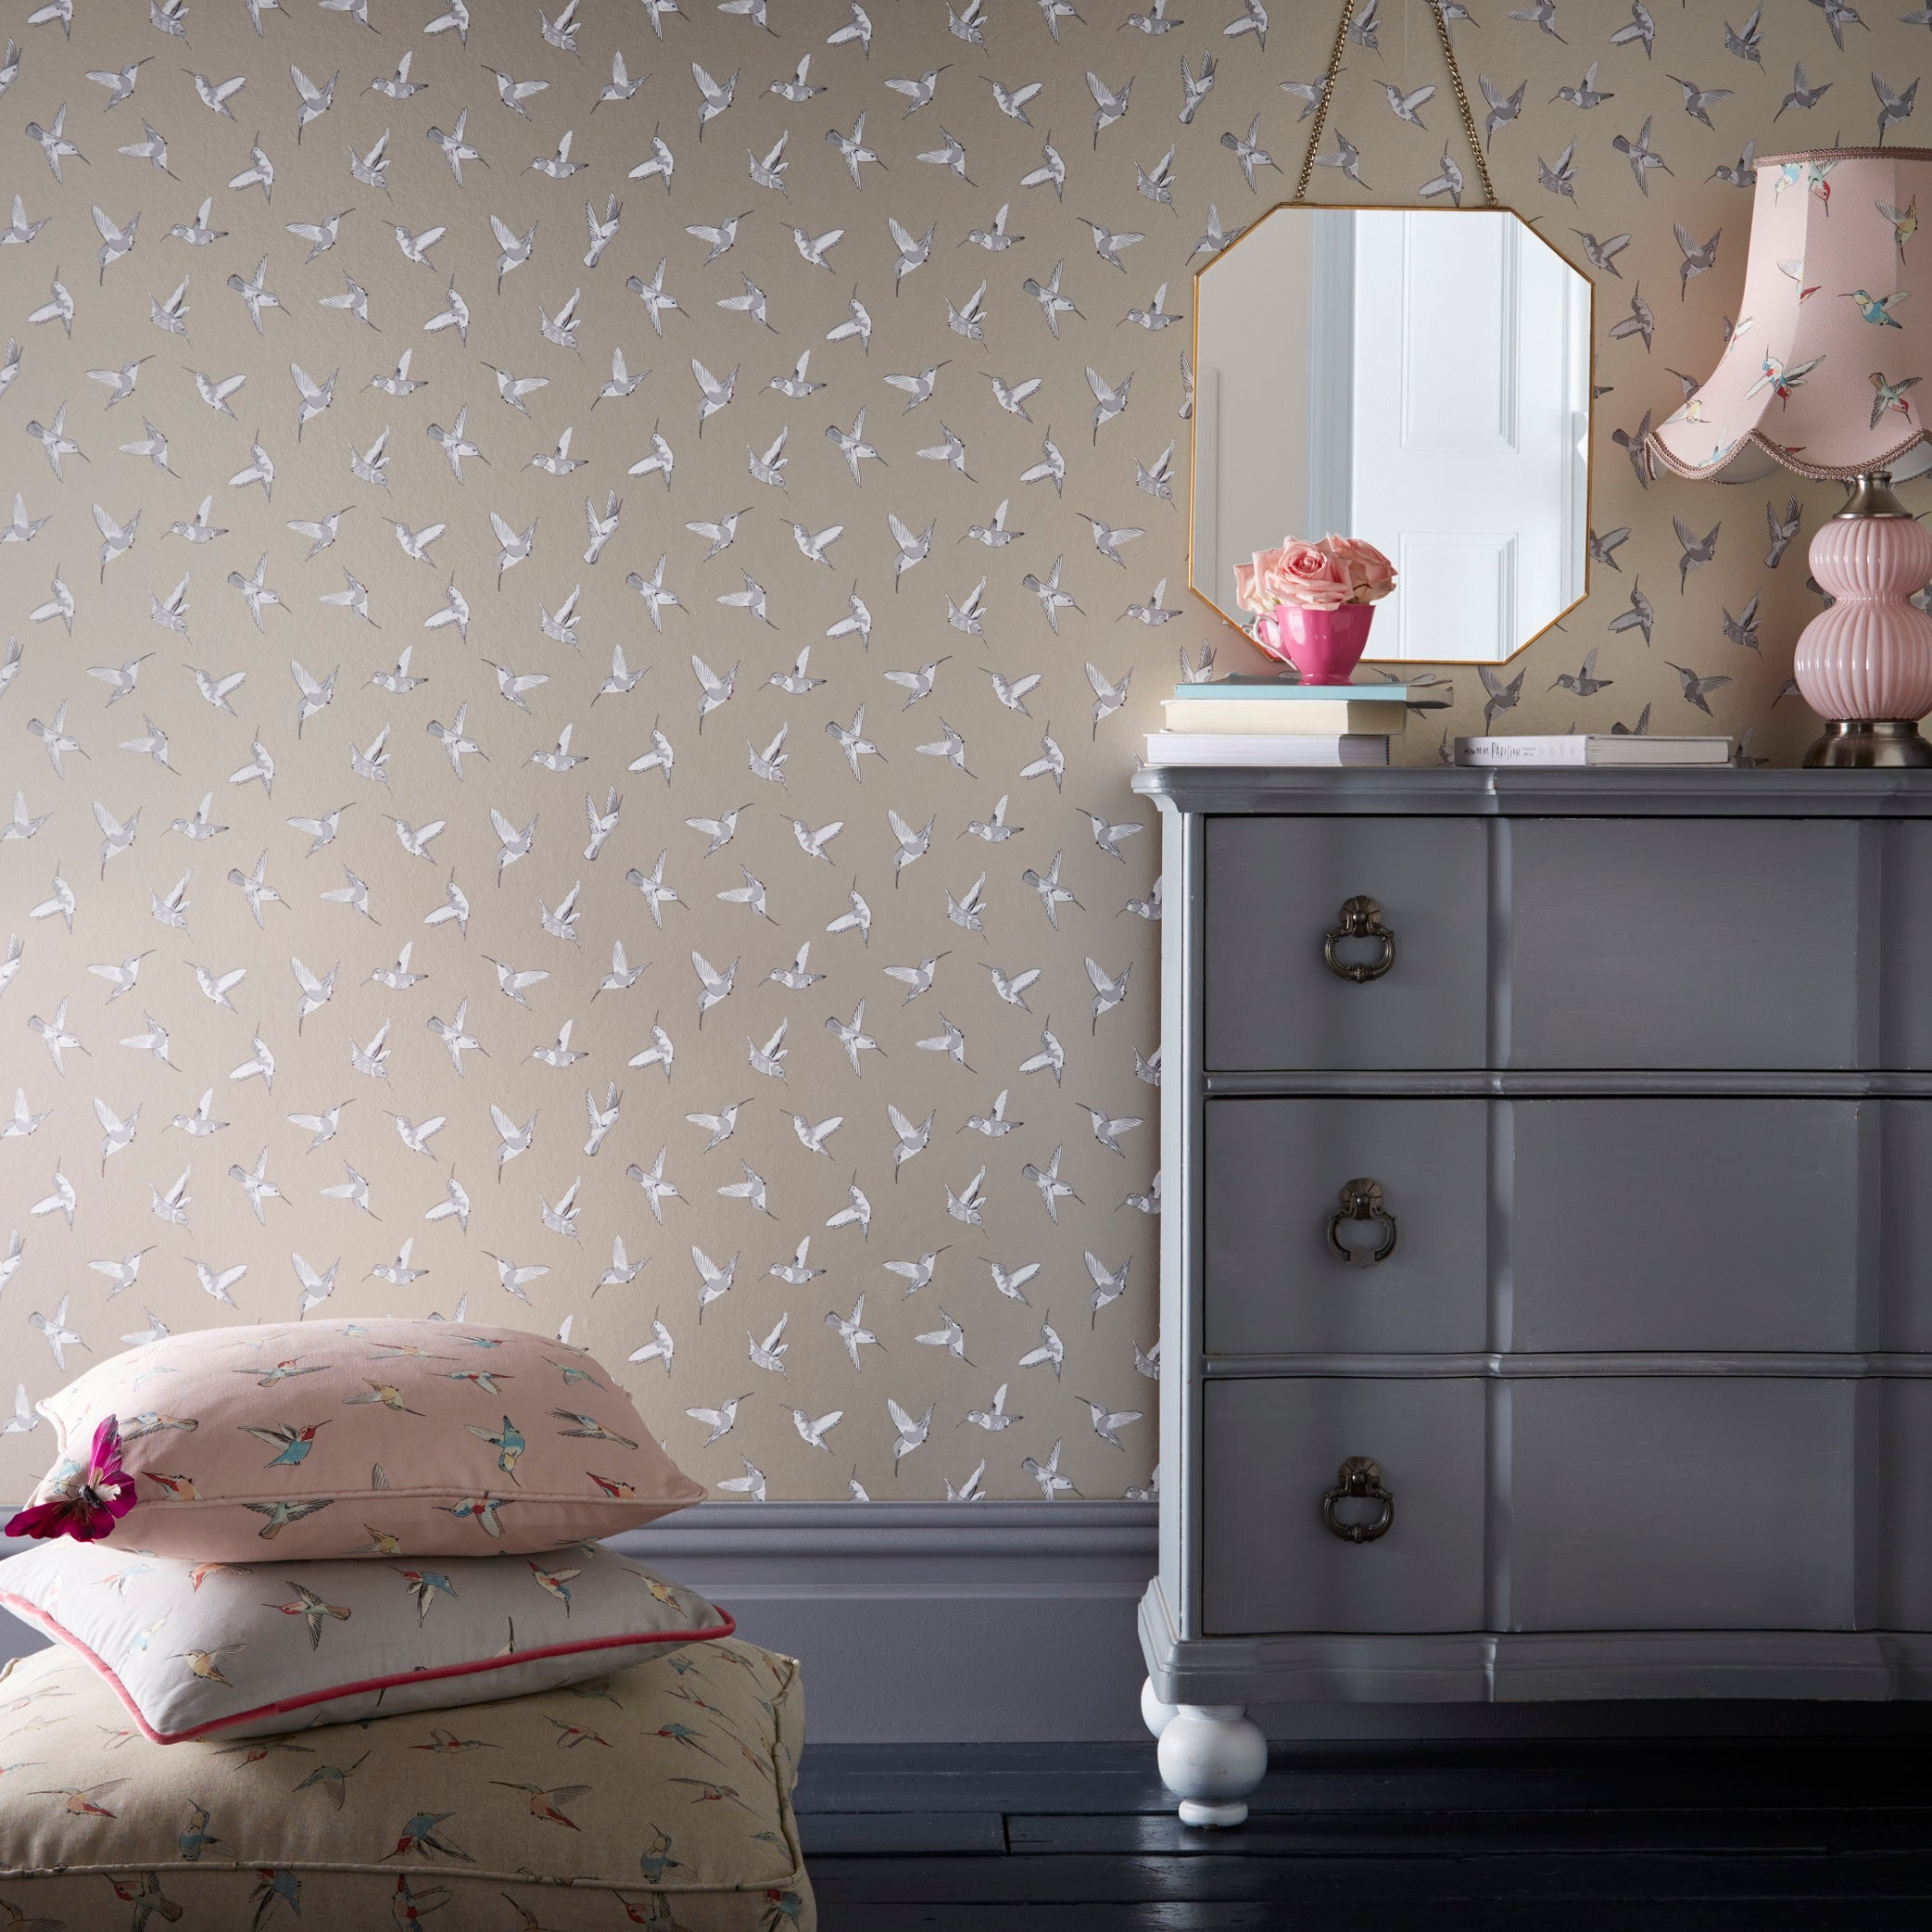 Hummingbird Oasis Designer Bird Wallpaper | Blush Pink, Gold/Silver & White